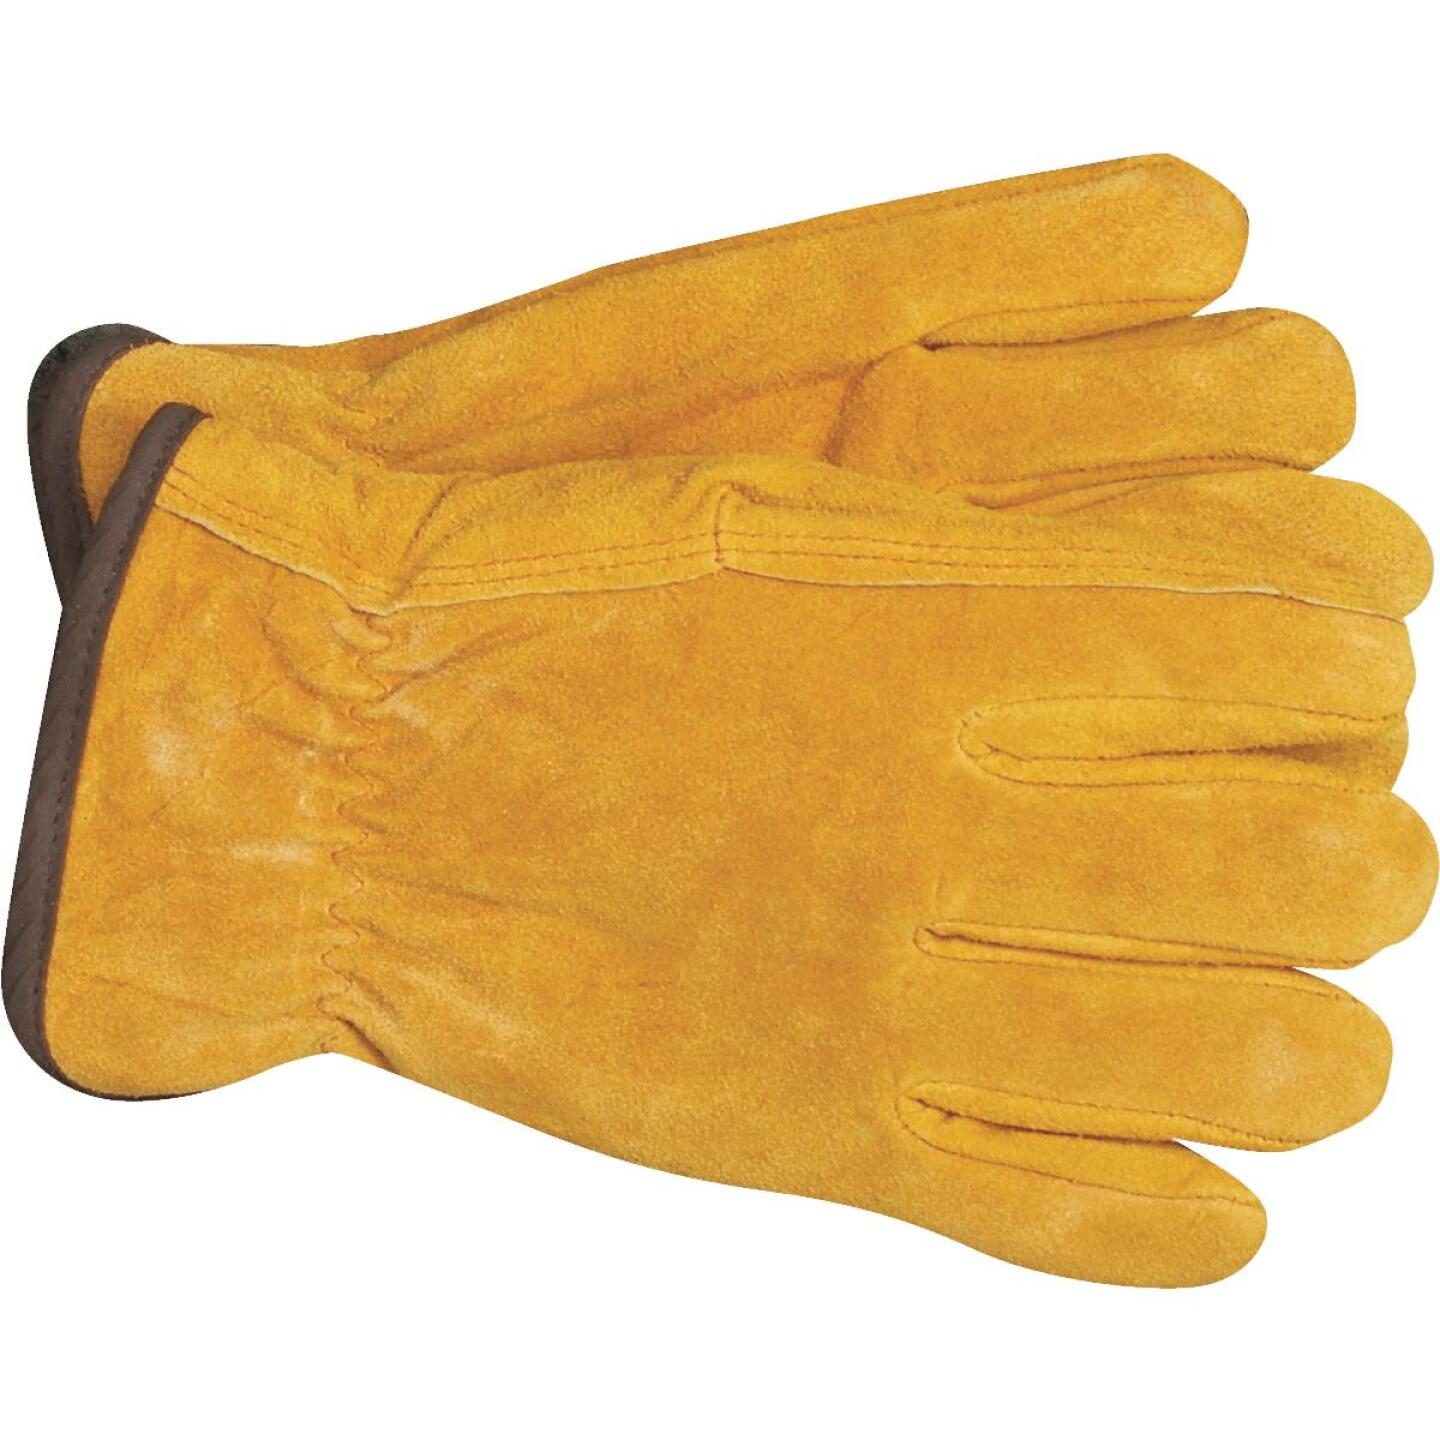 Do it Men's Medium Lined Leather Winter Work Glove Image 3